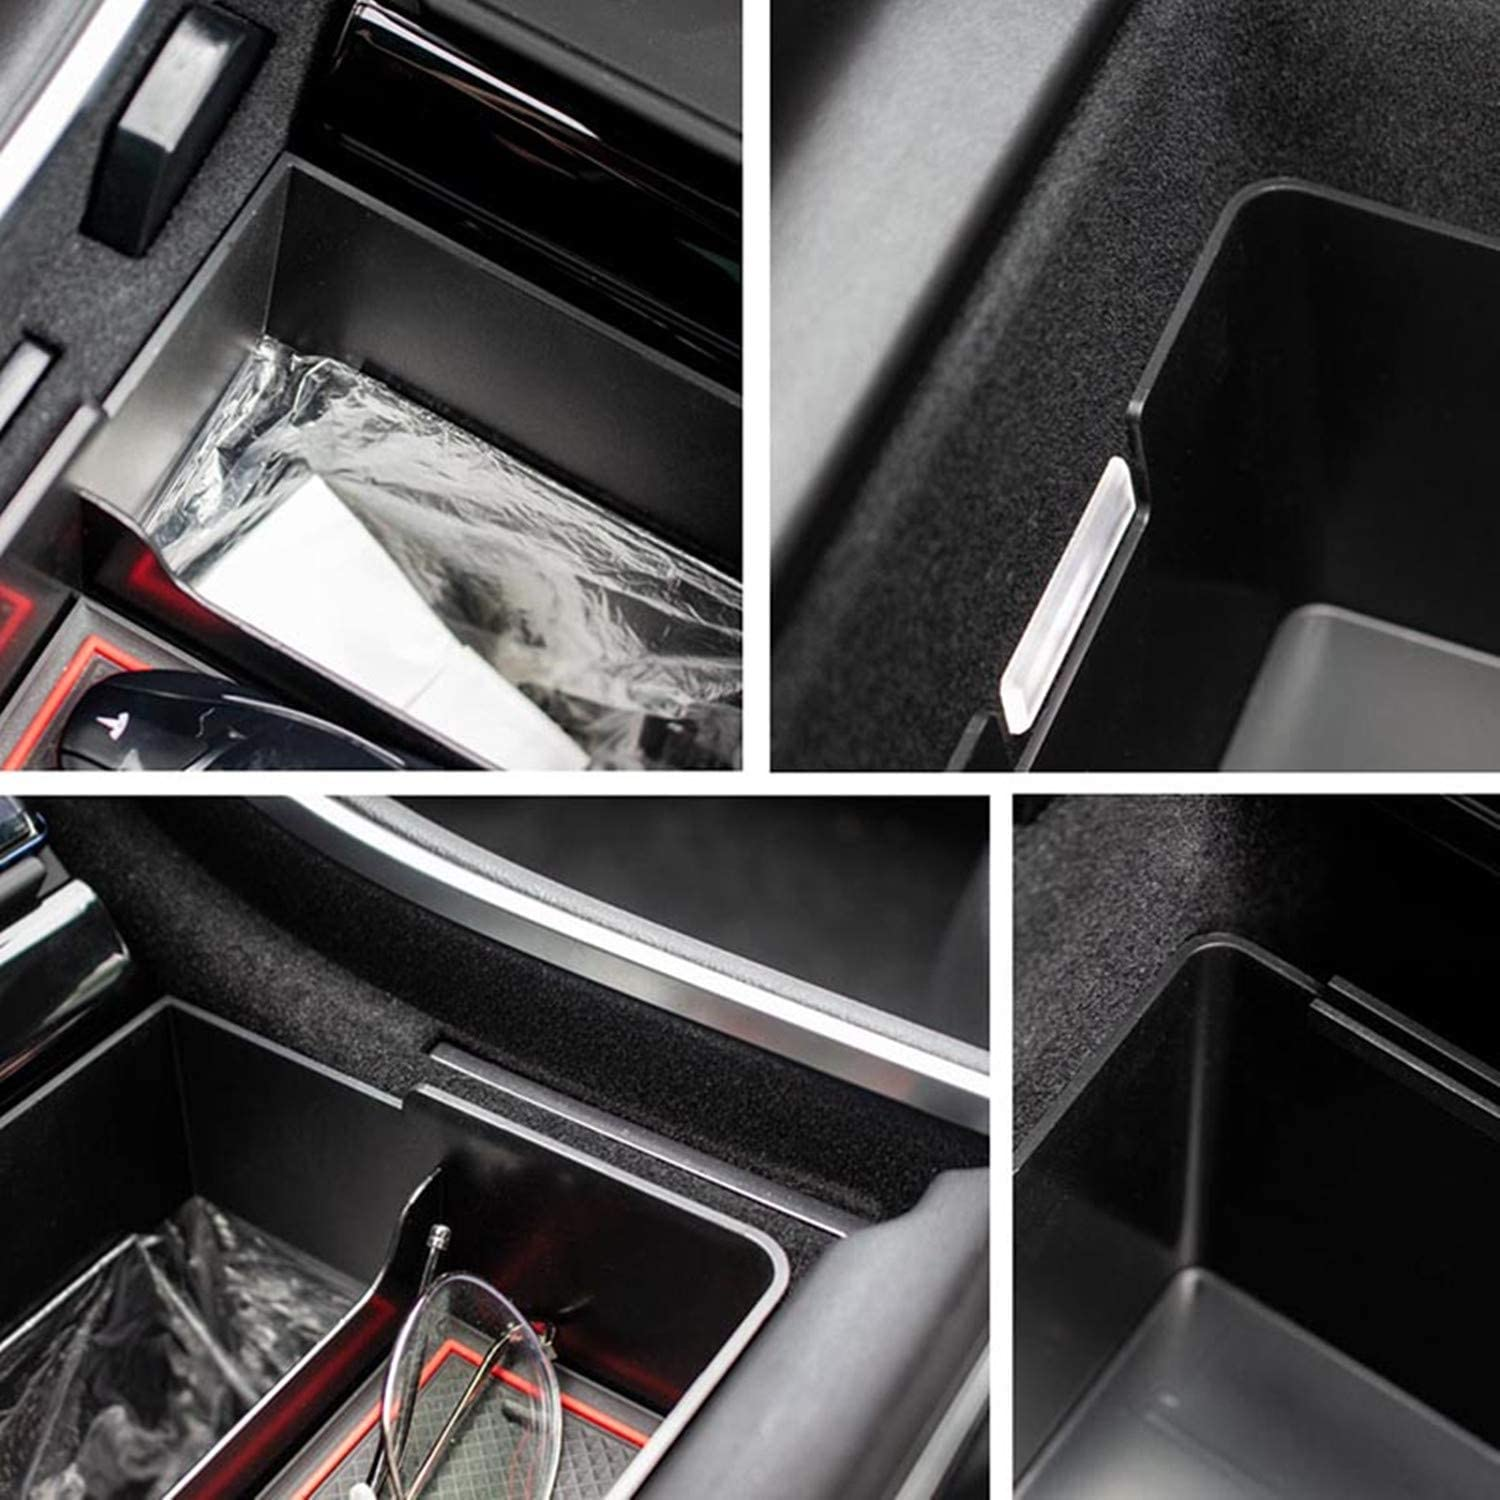 Homeyi Center Console Organizer Tray Insert Armrest Secondary Storage Box for 2016 2017 2018 Nissan Maxima